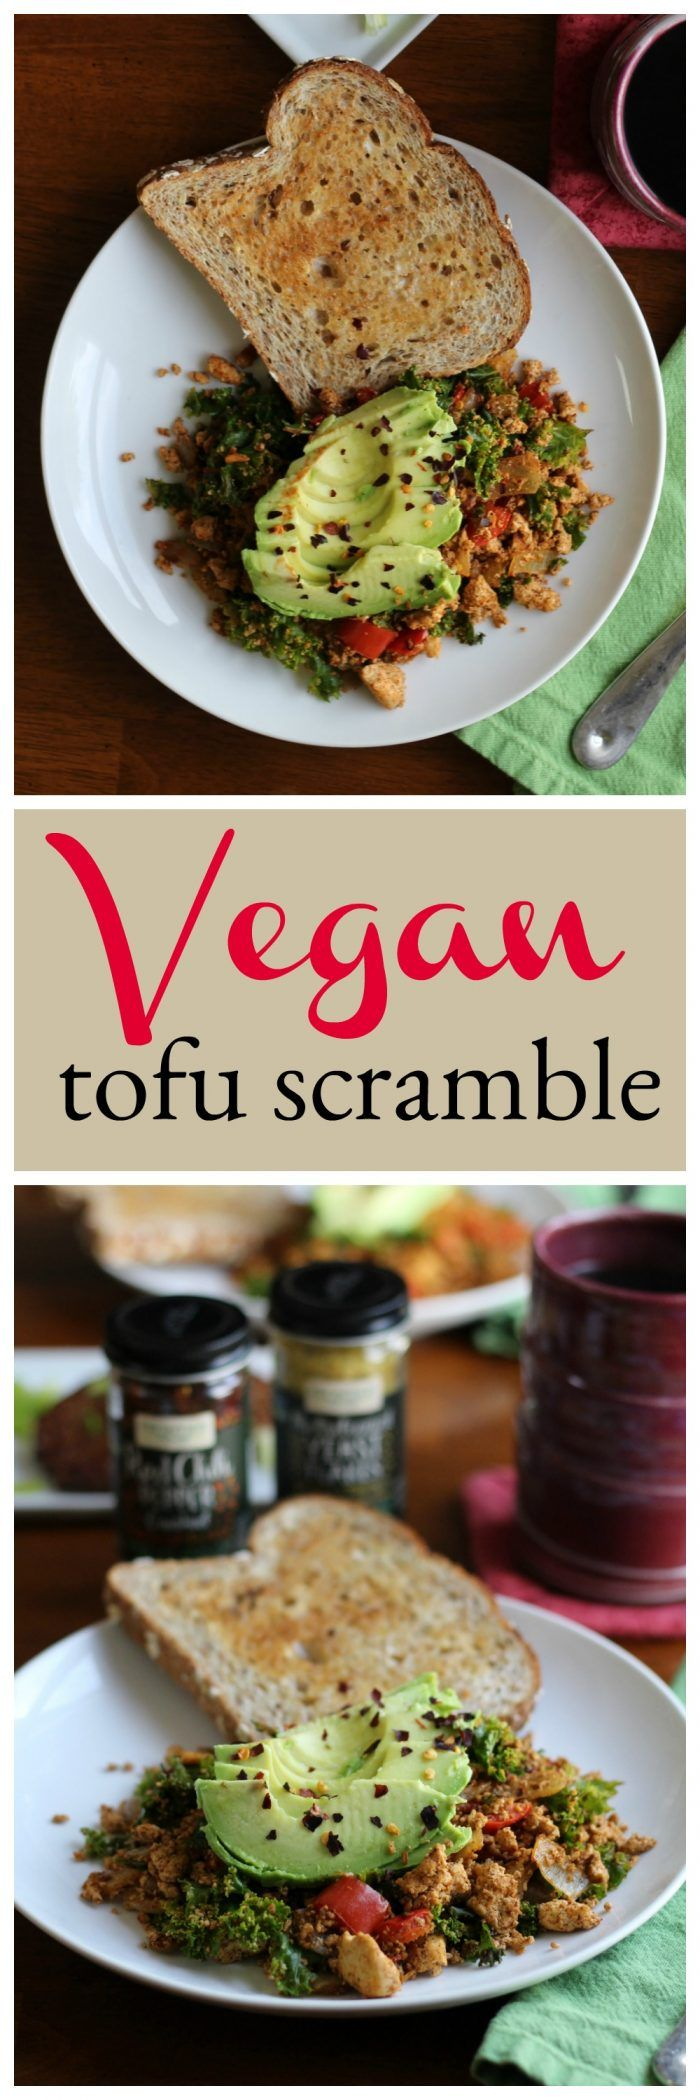 This vegan tofu scramble is loaded with kale, red bell pepper, onions, and spices. It's topped with avocado. Add breakfast potatoes or toast for a filling and hearty brunch. #vegan #brunch #breakfast via @cadryskitchen